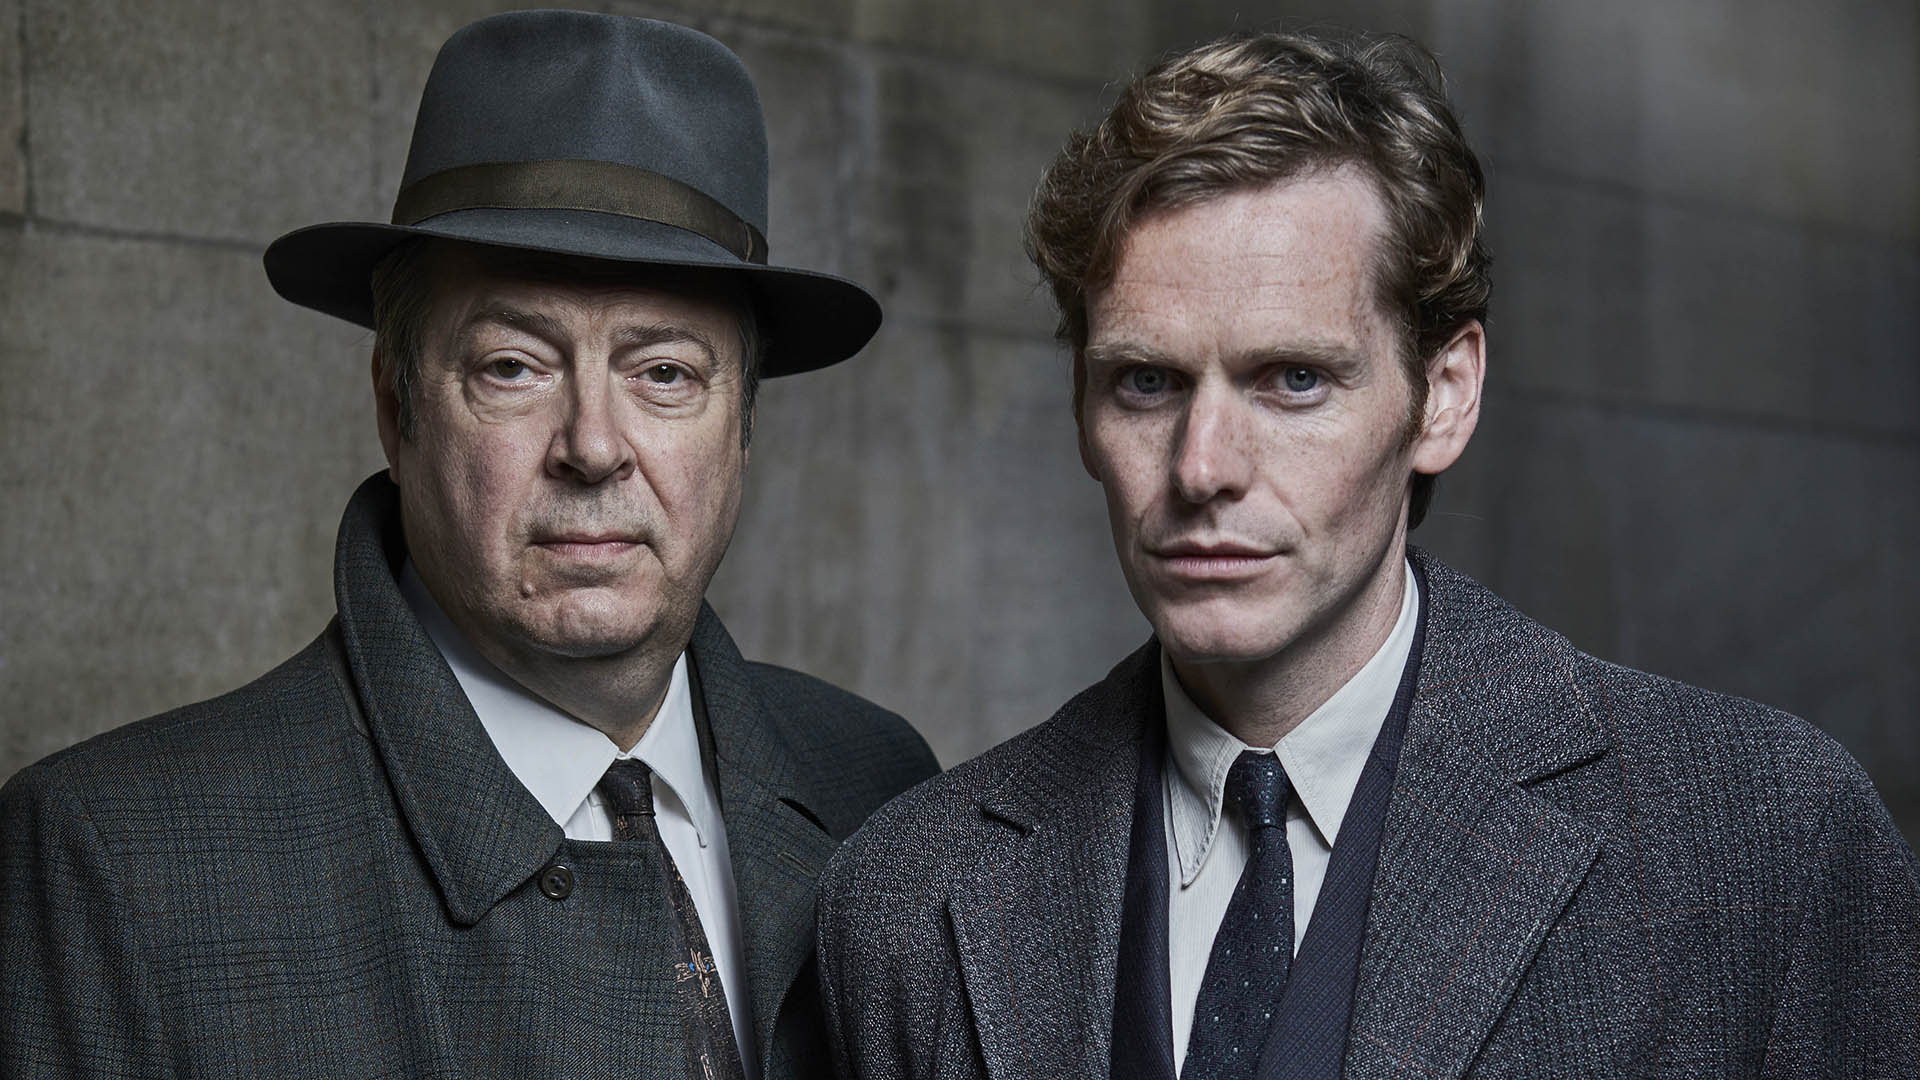 'Endeavour' heats up in Season 4 with Cold War intrigue